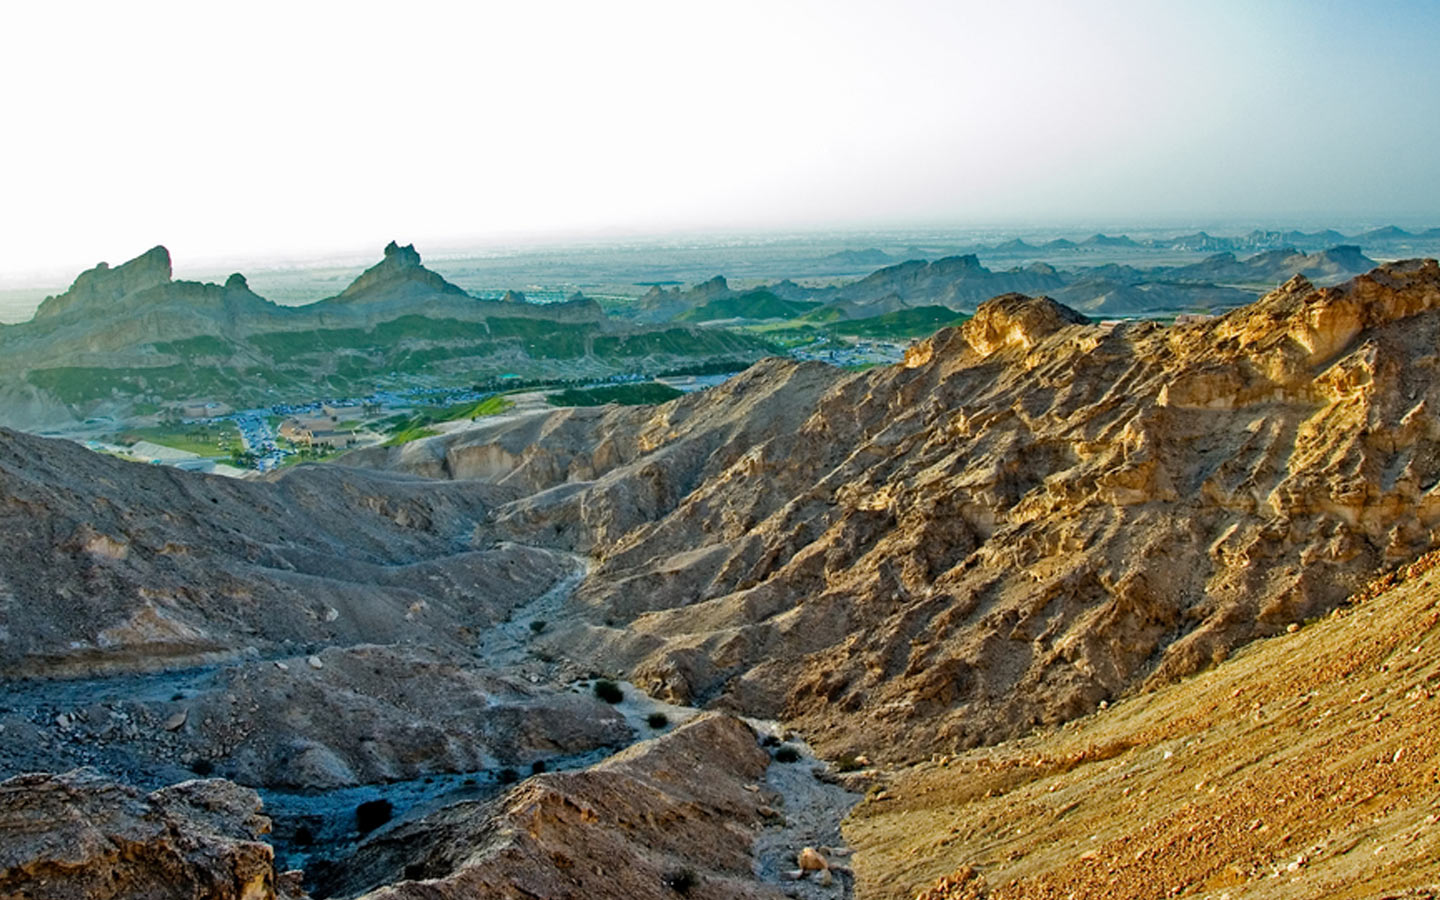 The Jebel Hafeet provides the experience of having one of the best hikes in the UAE